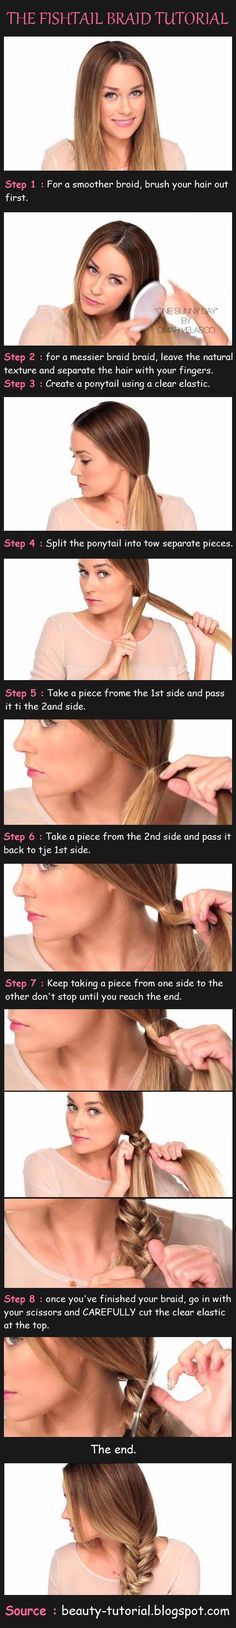 The Fishtail Braid Tutorial